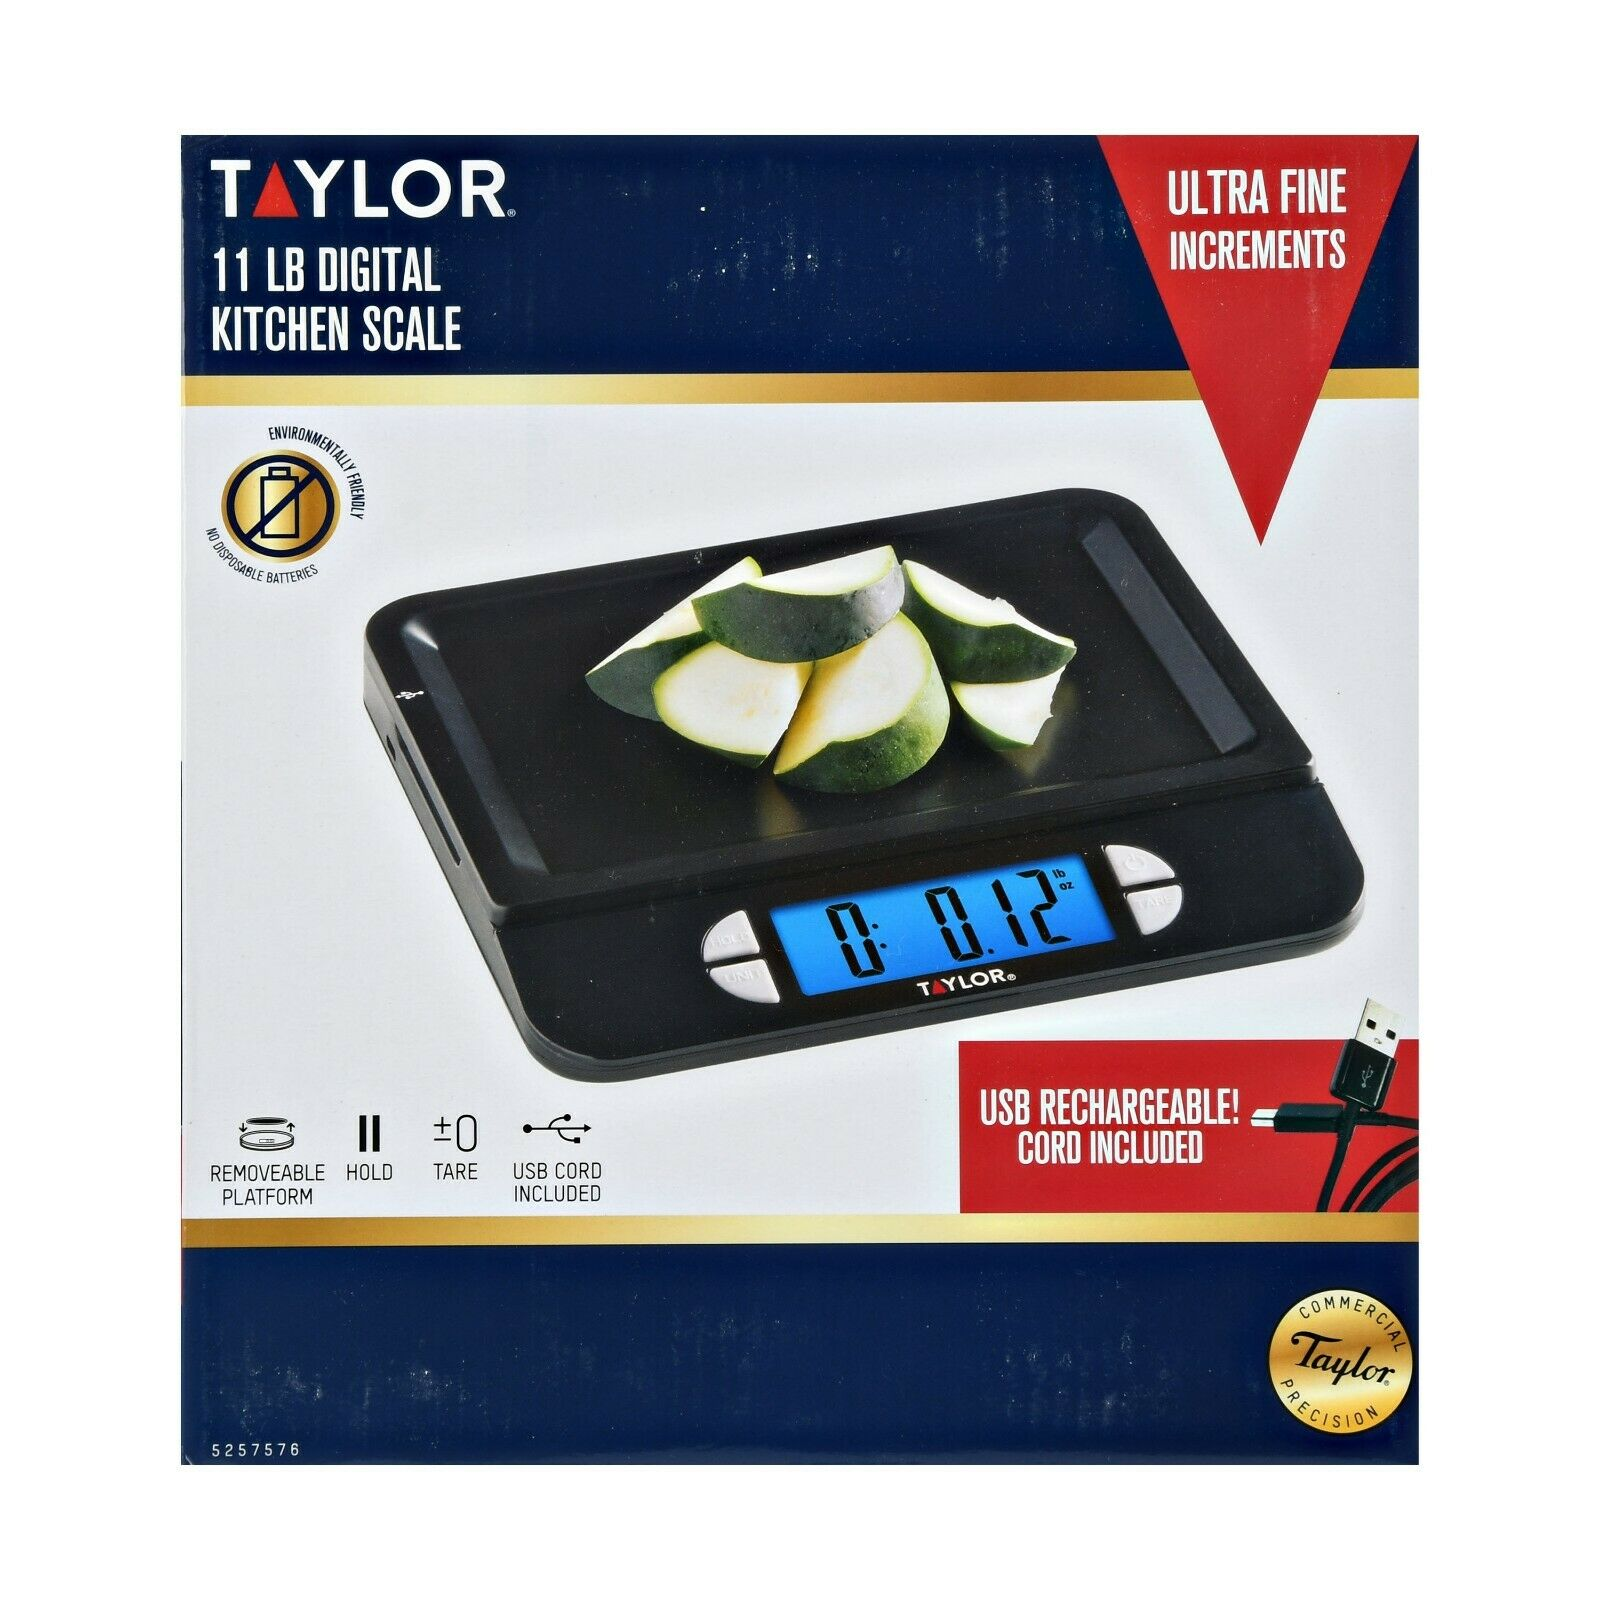 Taylor USB Rechargeable Precision Digital Kitchen Scale, 11l